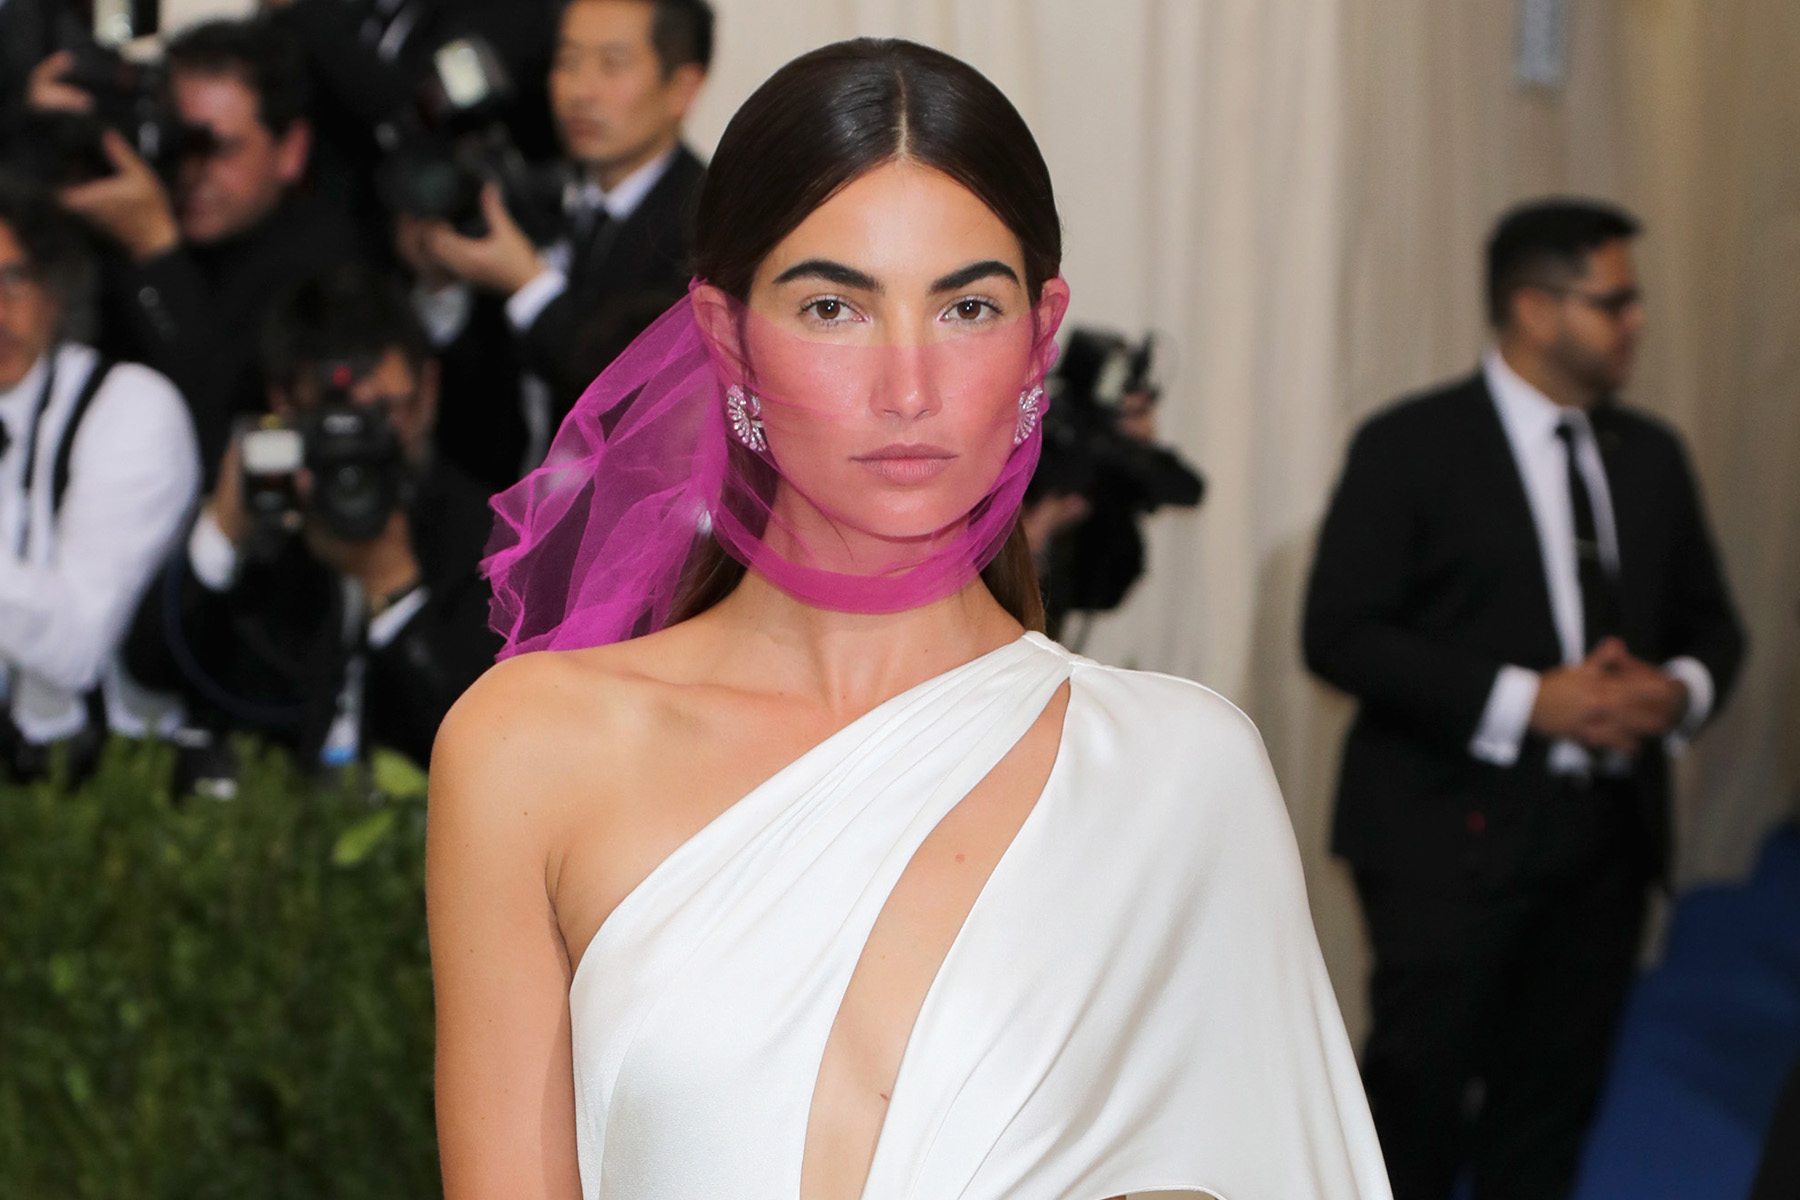 A woman on the red carpet in a white dress and pink scarf